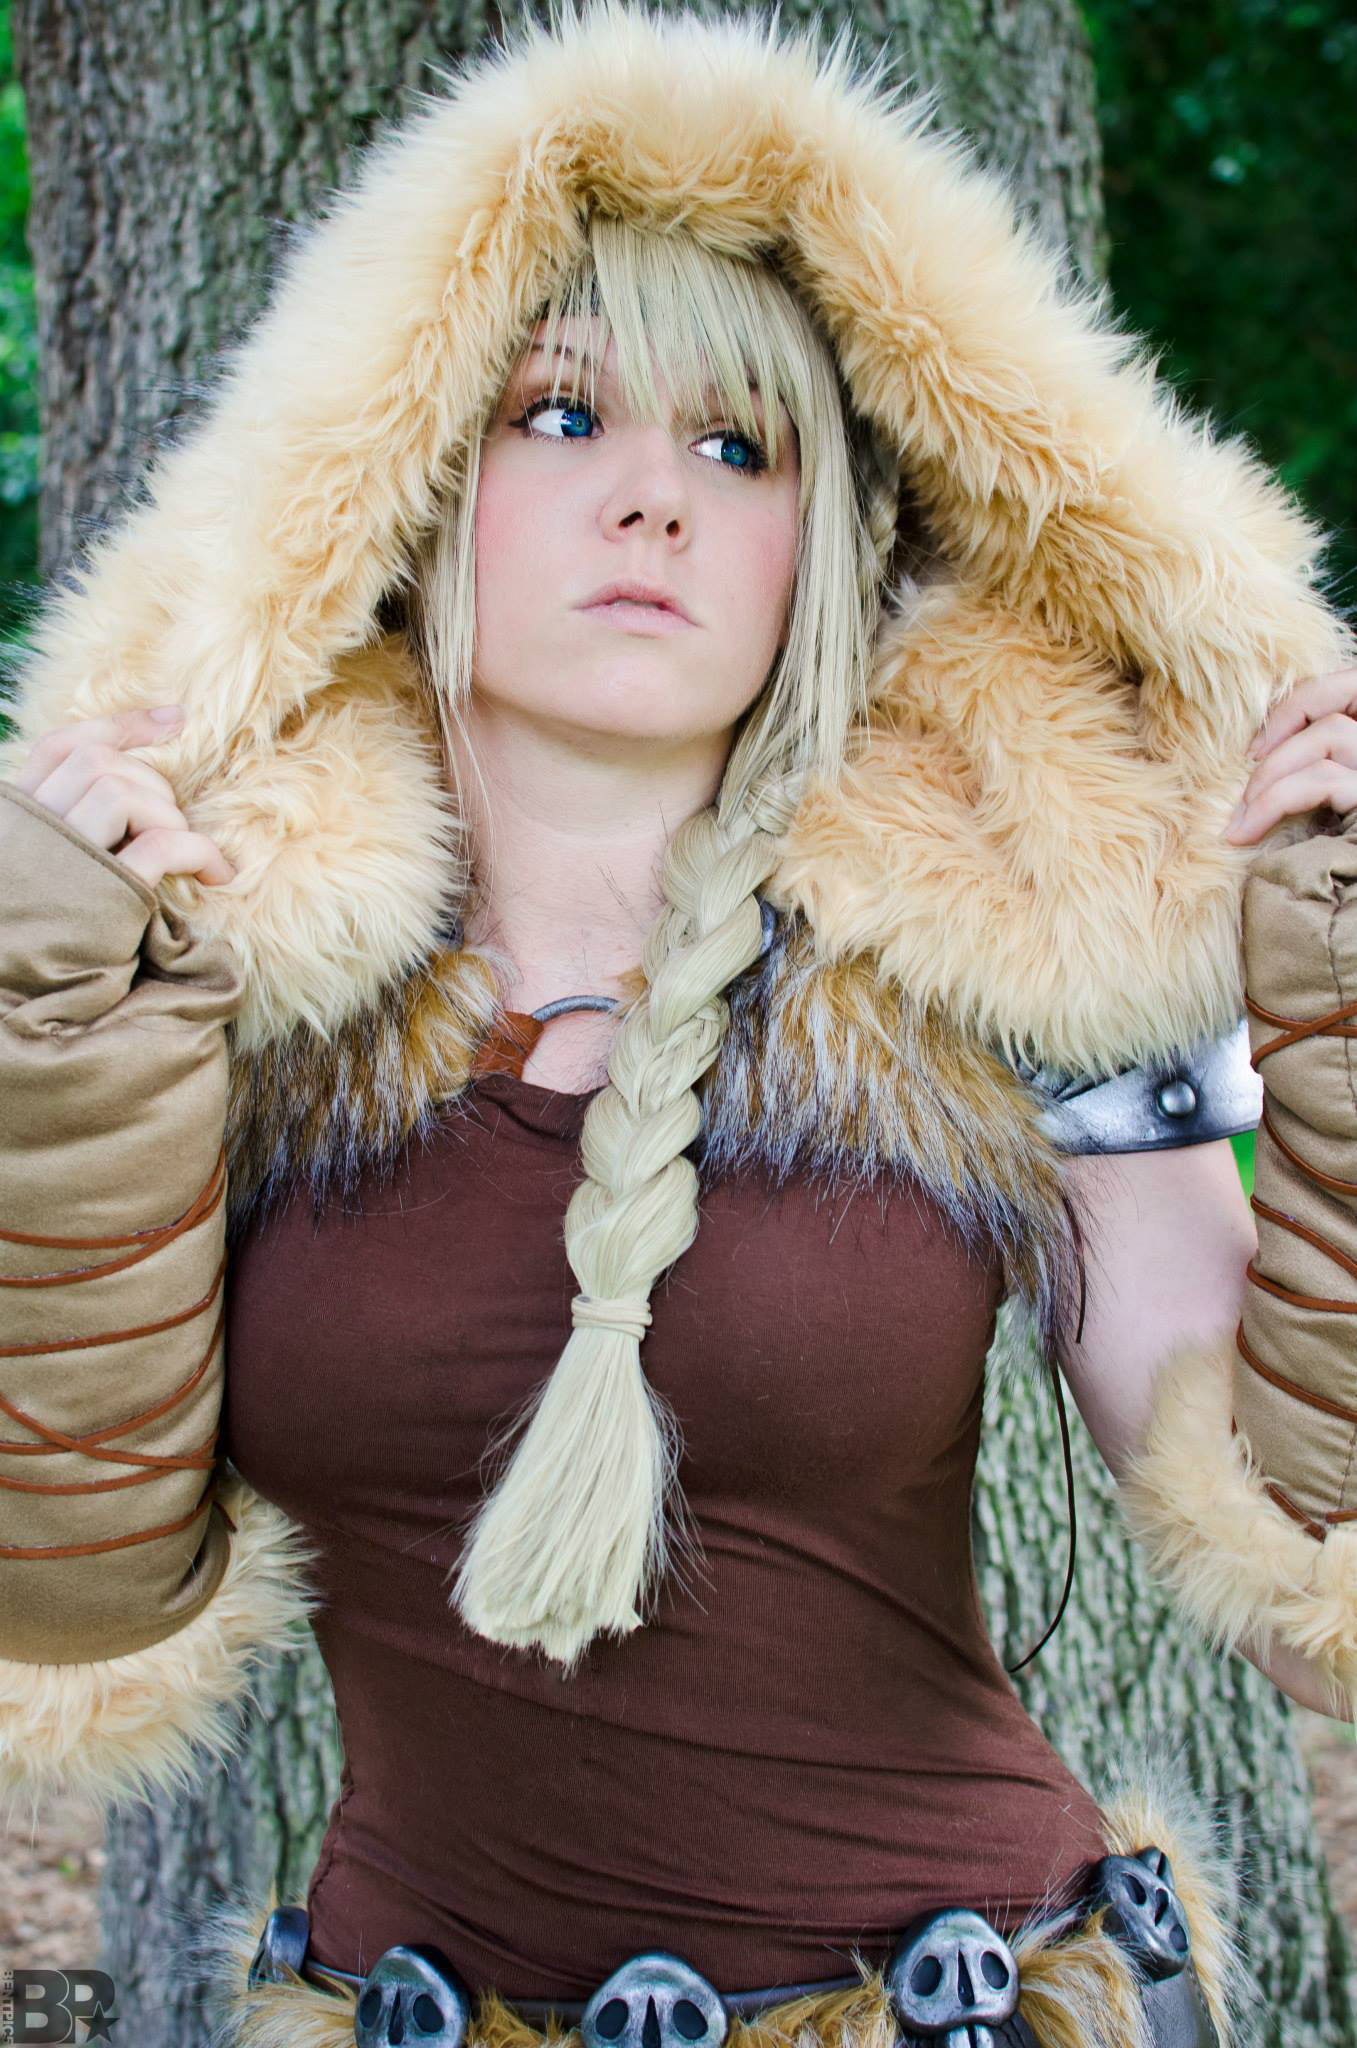 Astrid from how to train your dragon  sexy picture